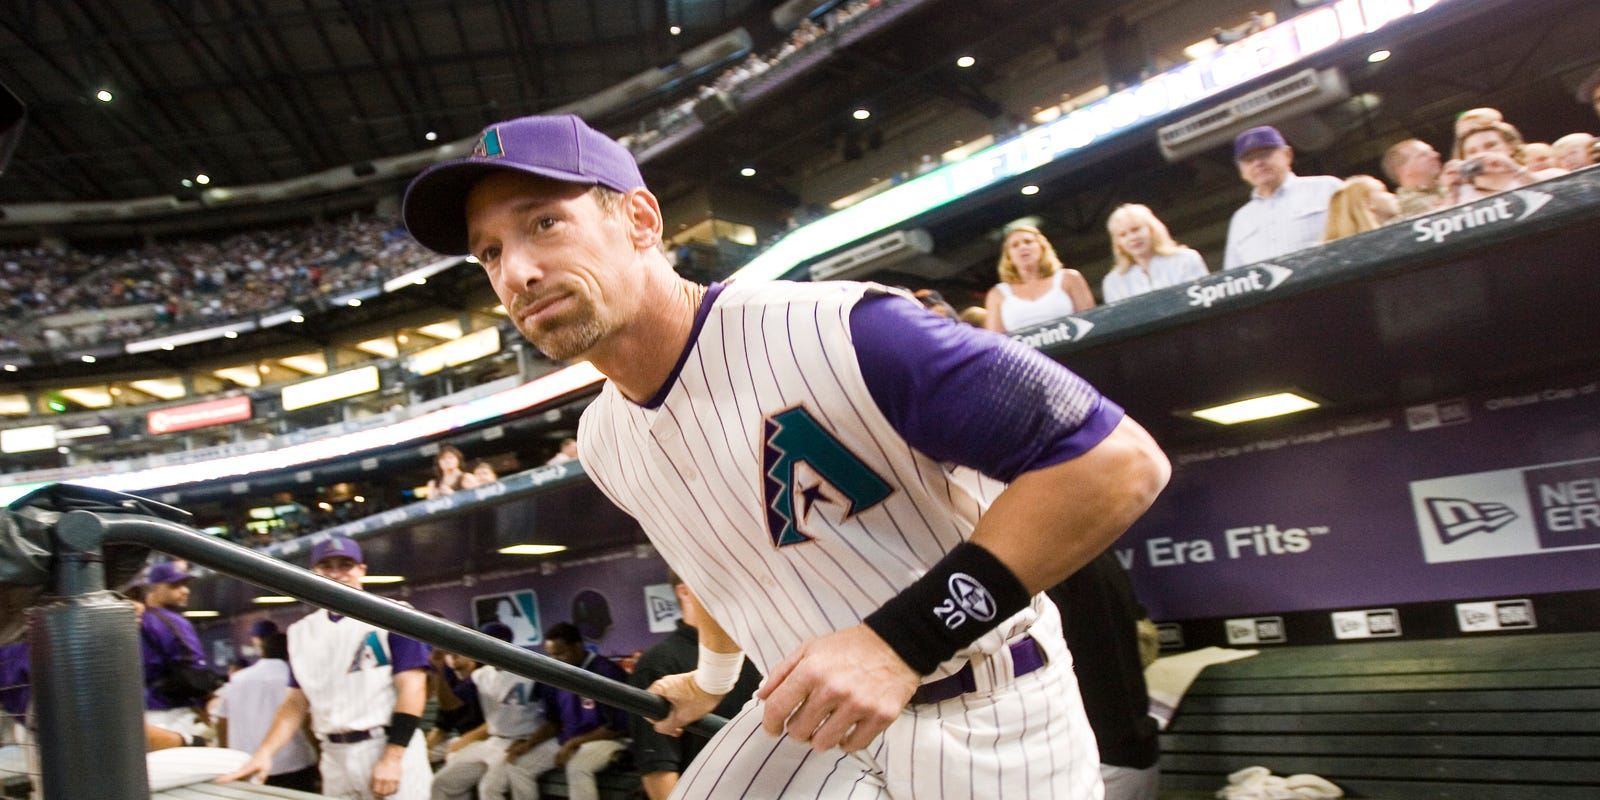 New Arizona Diamondbacks uniforms are an improvement, but there's no purple and teal set